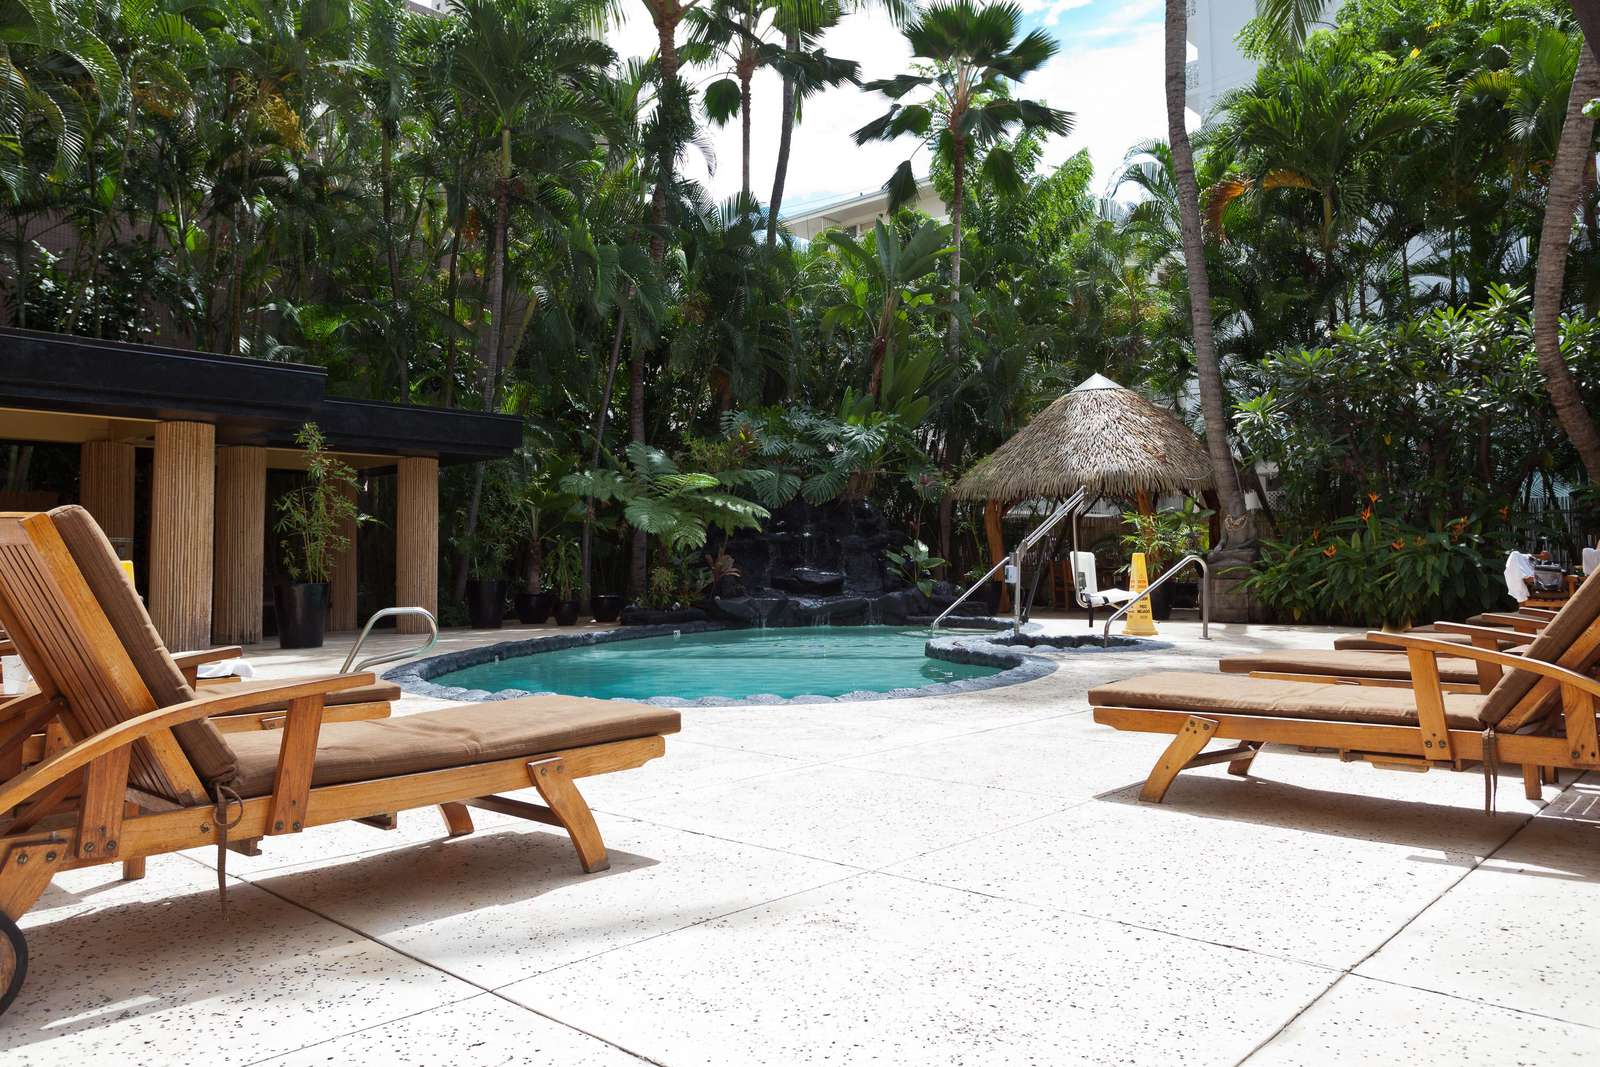 An Oasis in the heart of Waikiki